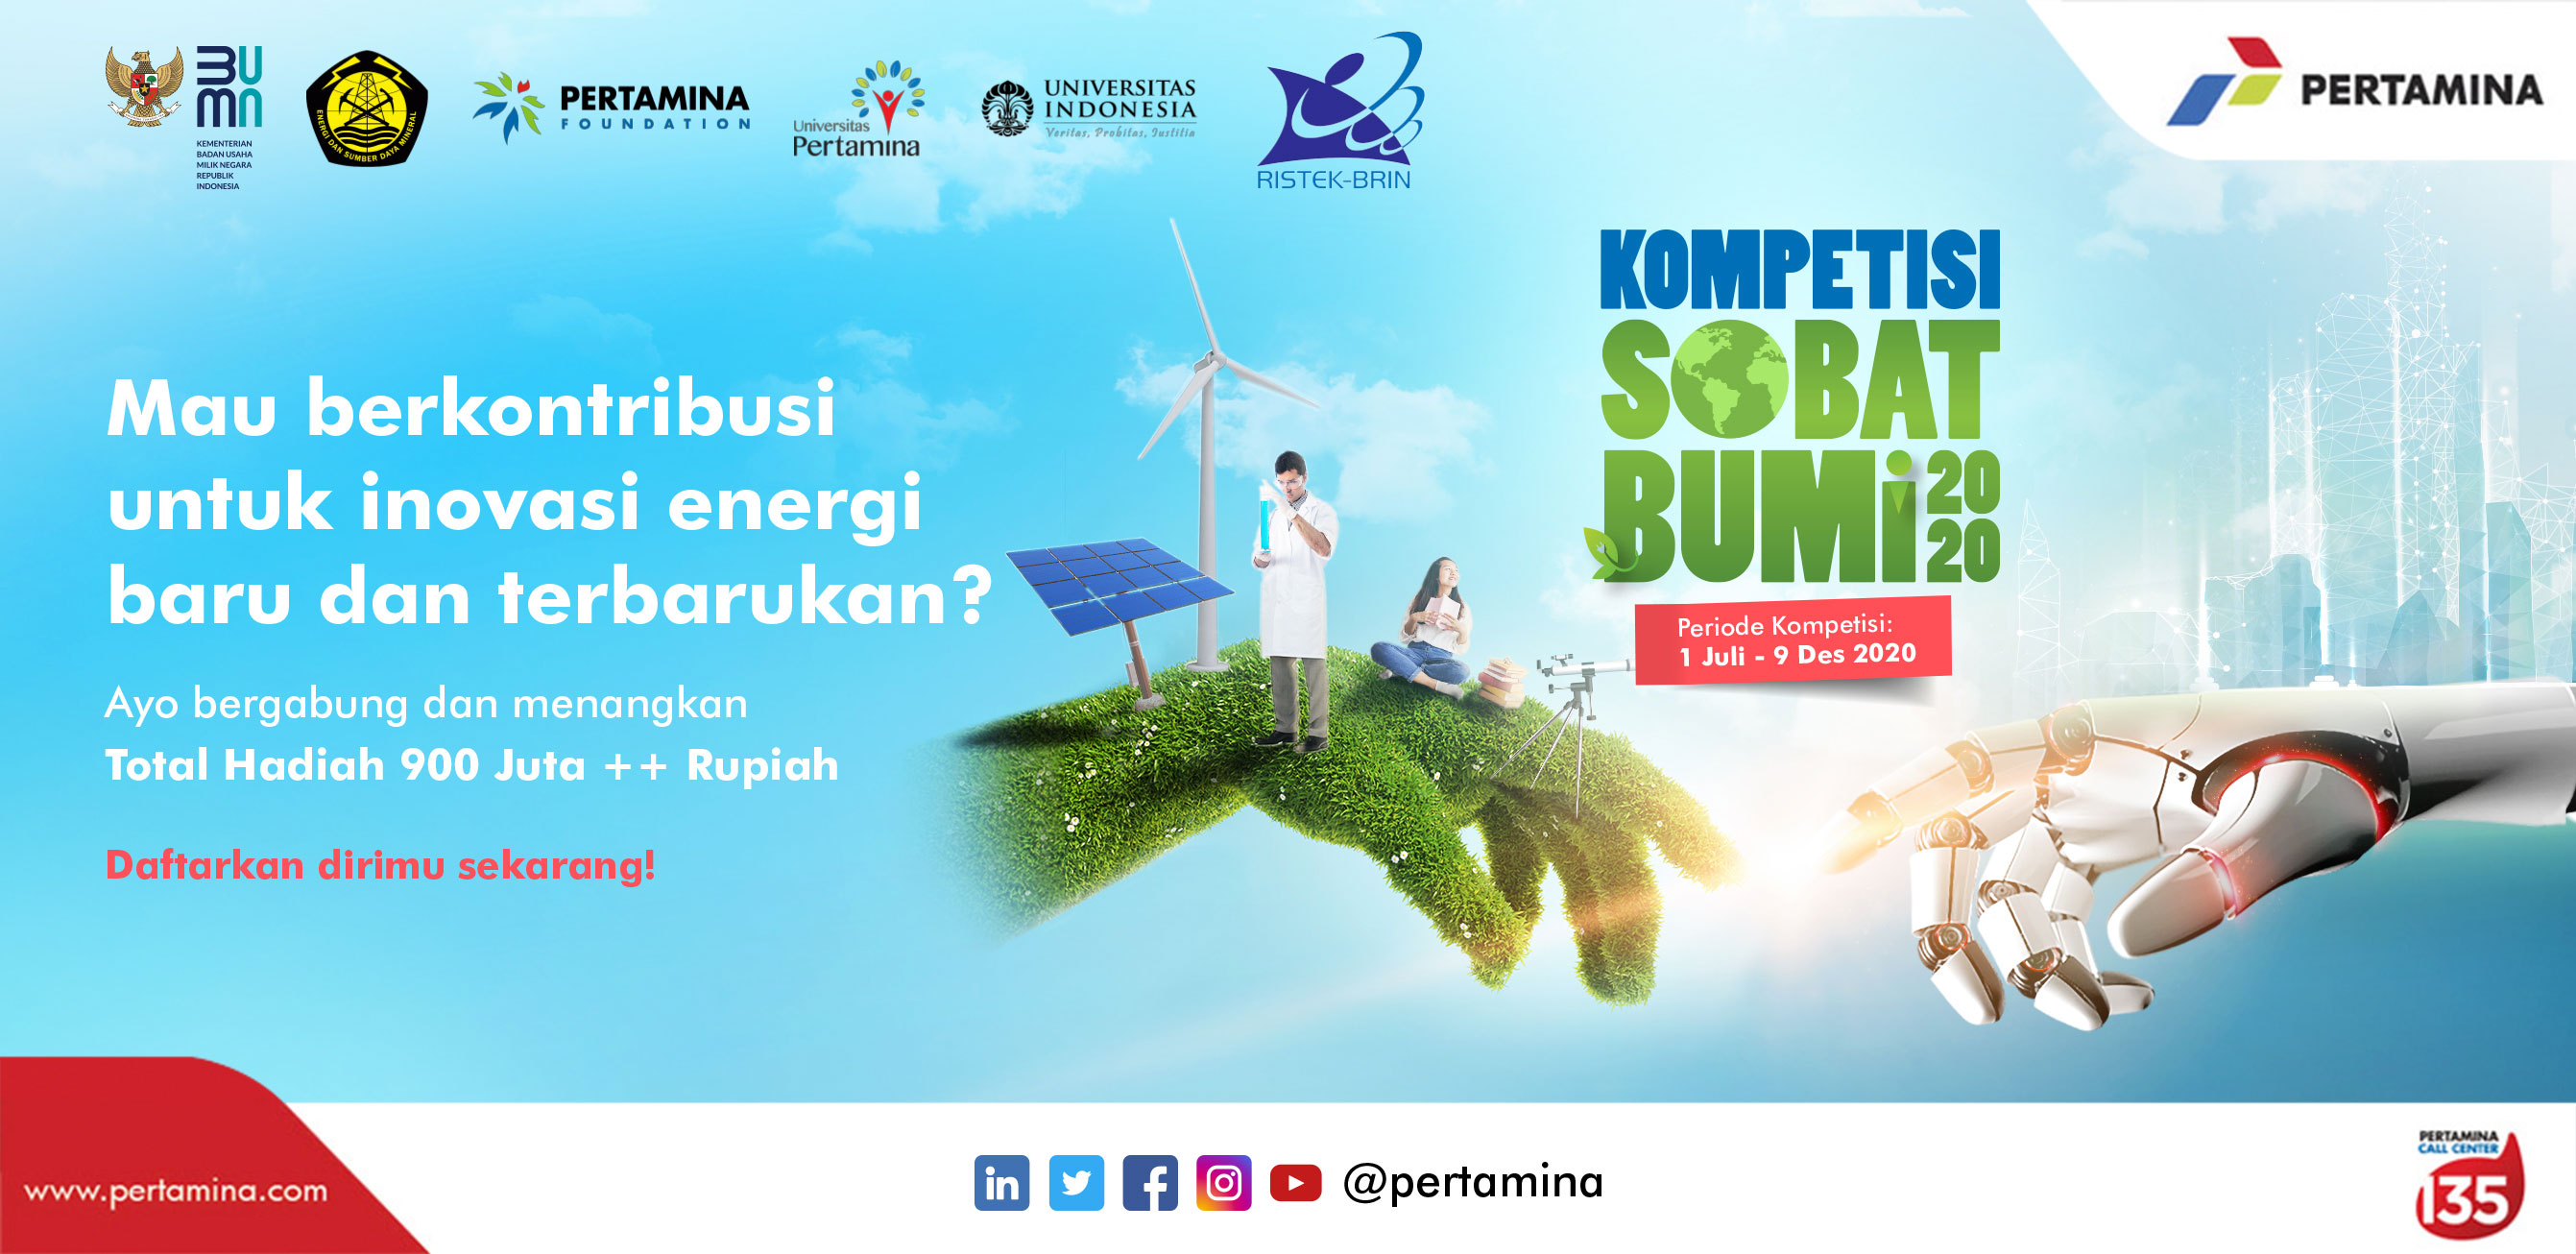 Kompetisi Sobat Bumi | Banner Highlight Program